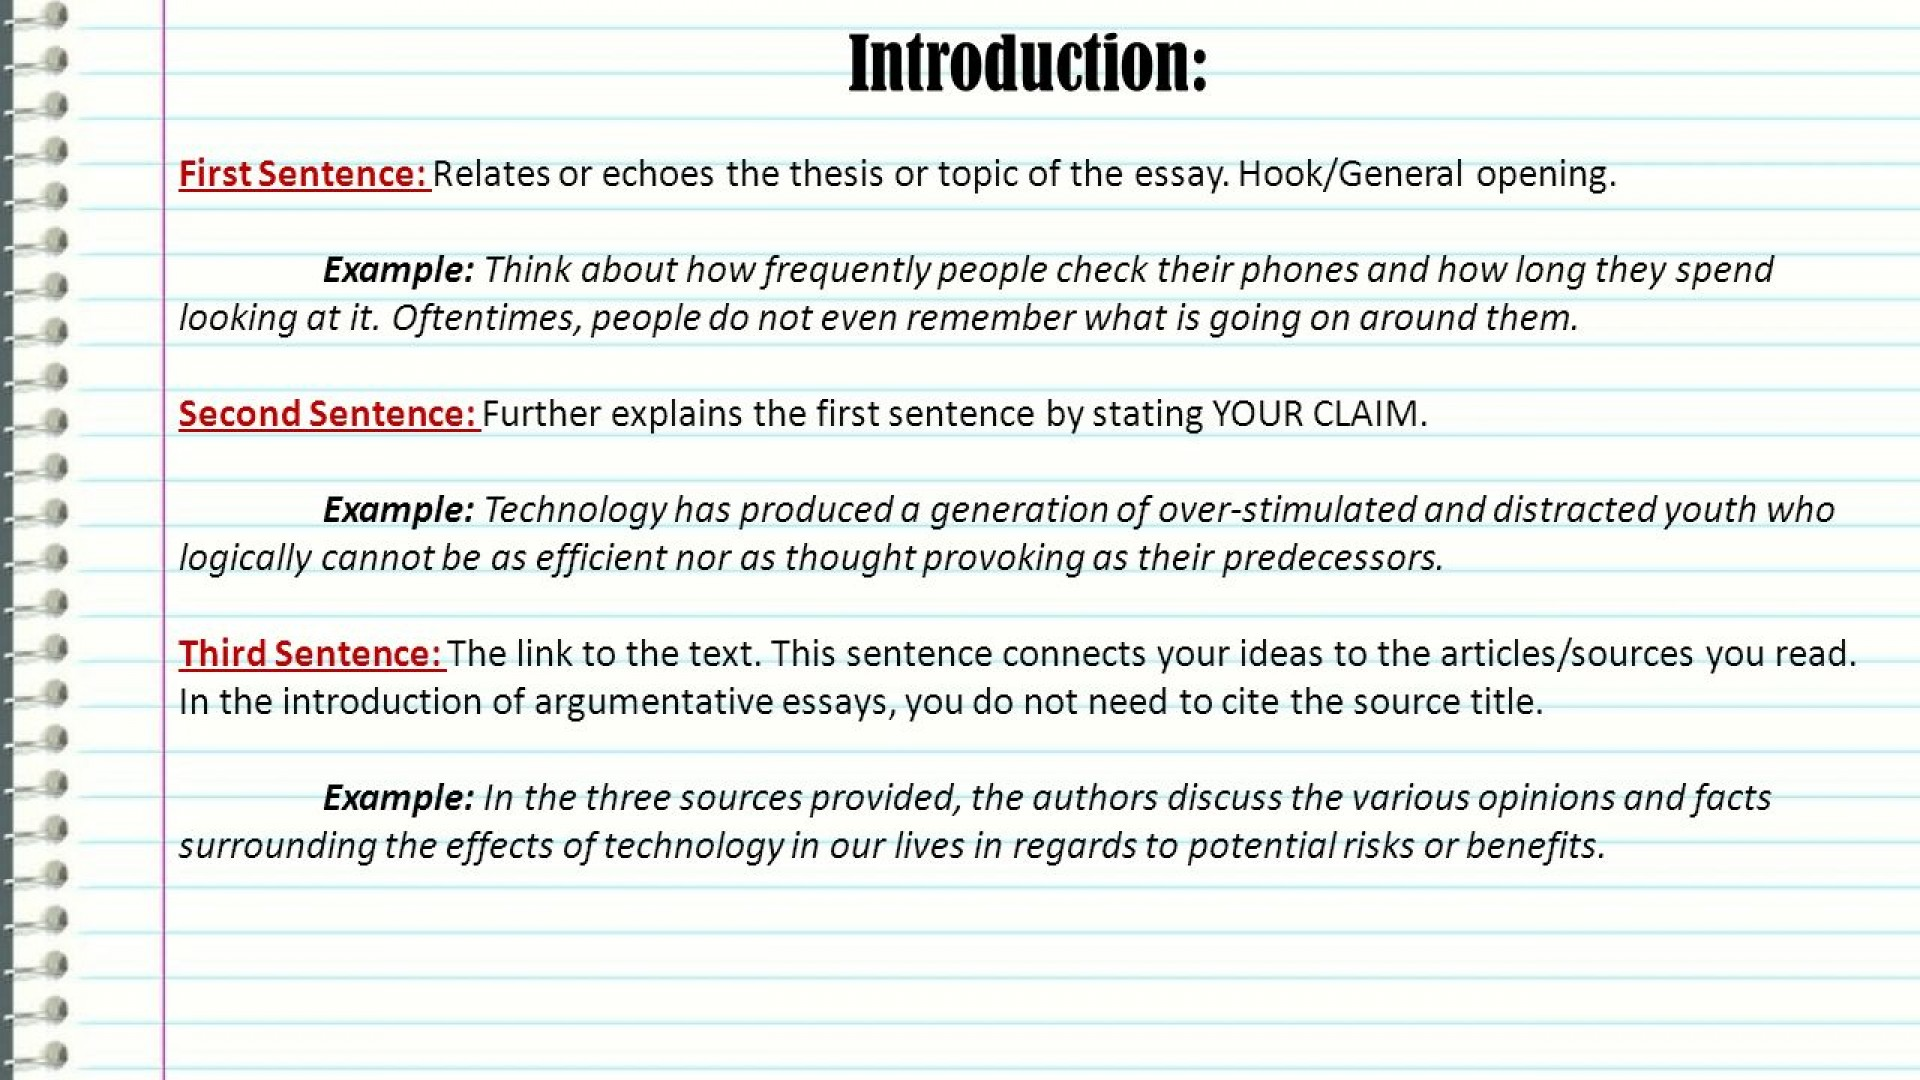 007 Essay Example Good Hook Sentences For College Essays Great Opening Lines From How To Start Your Introduction Stupendous An About Yourself Death Quotes 1920